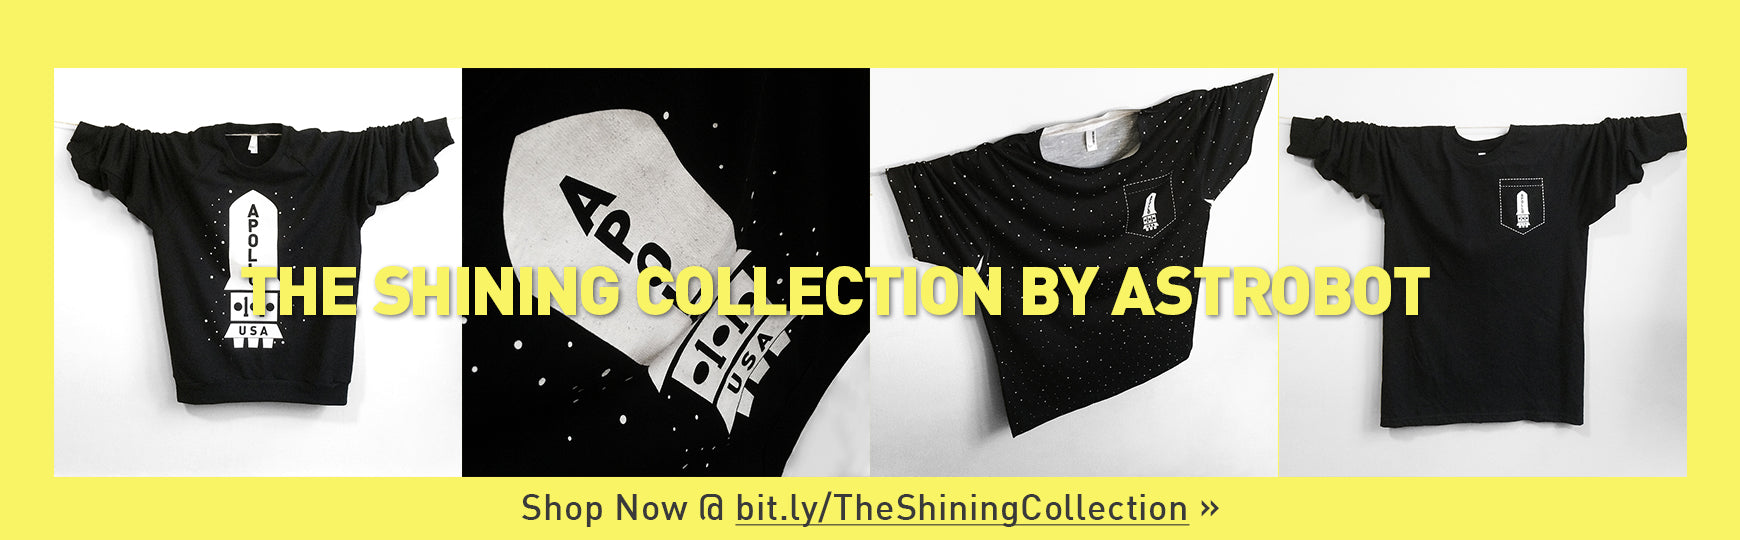 The Shining Collection by Astrobot